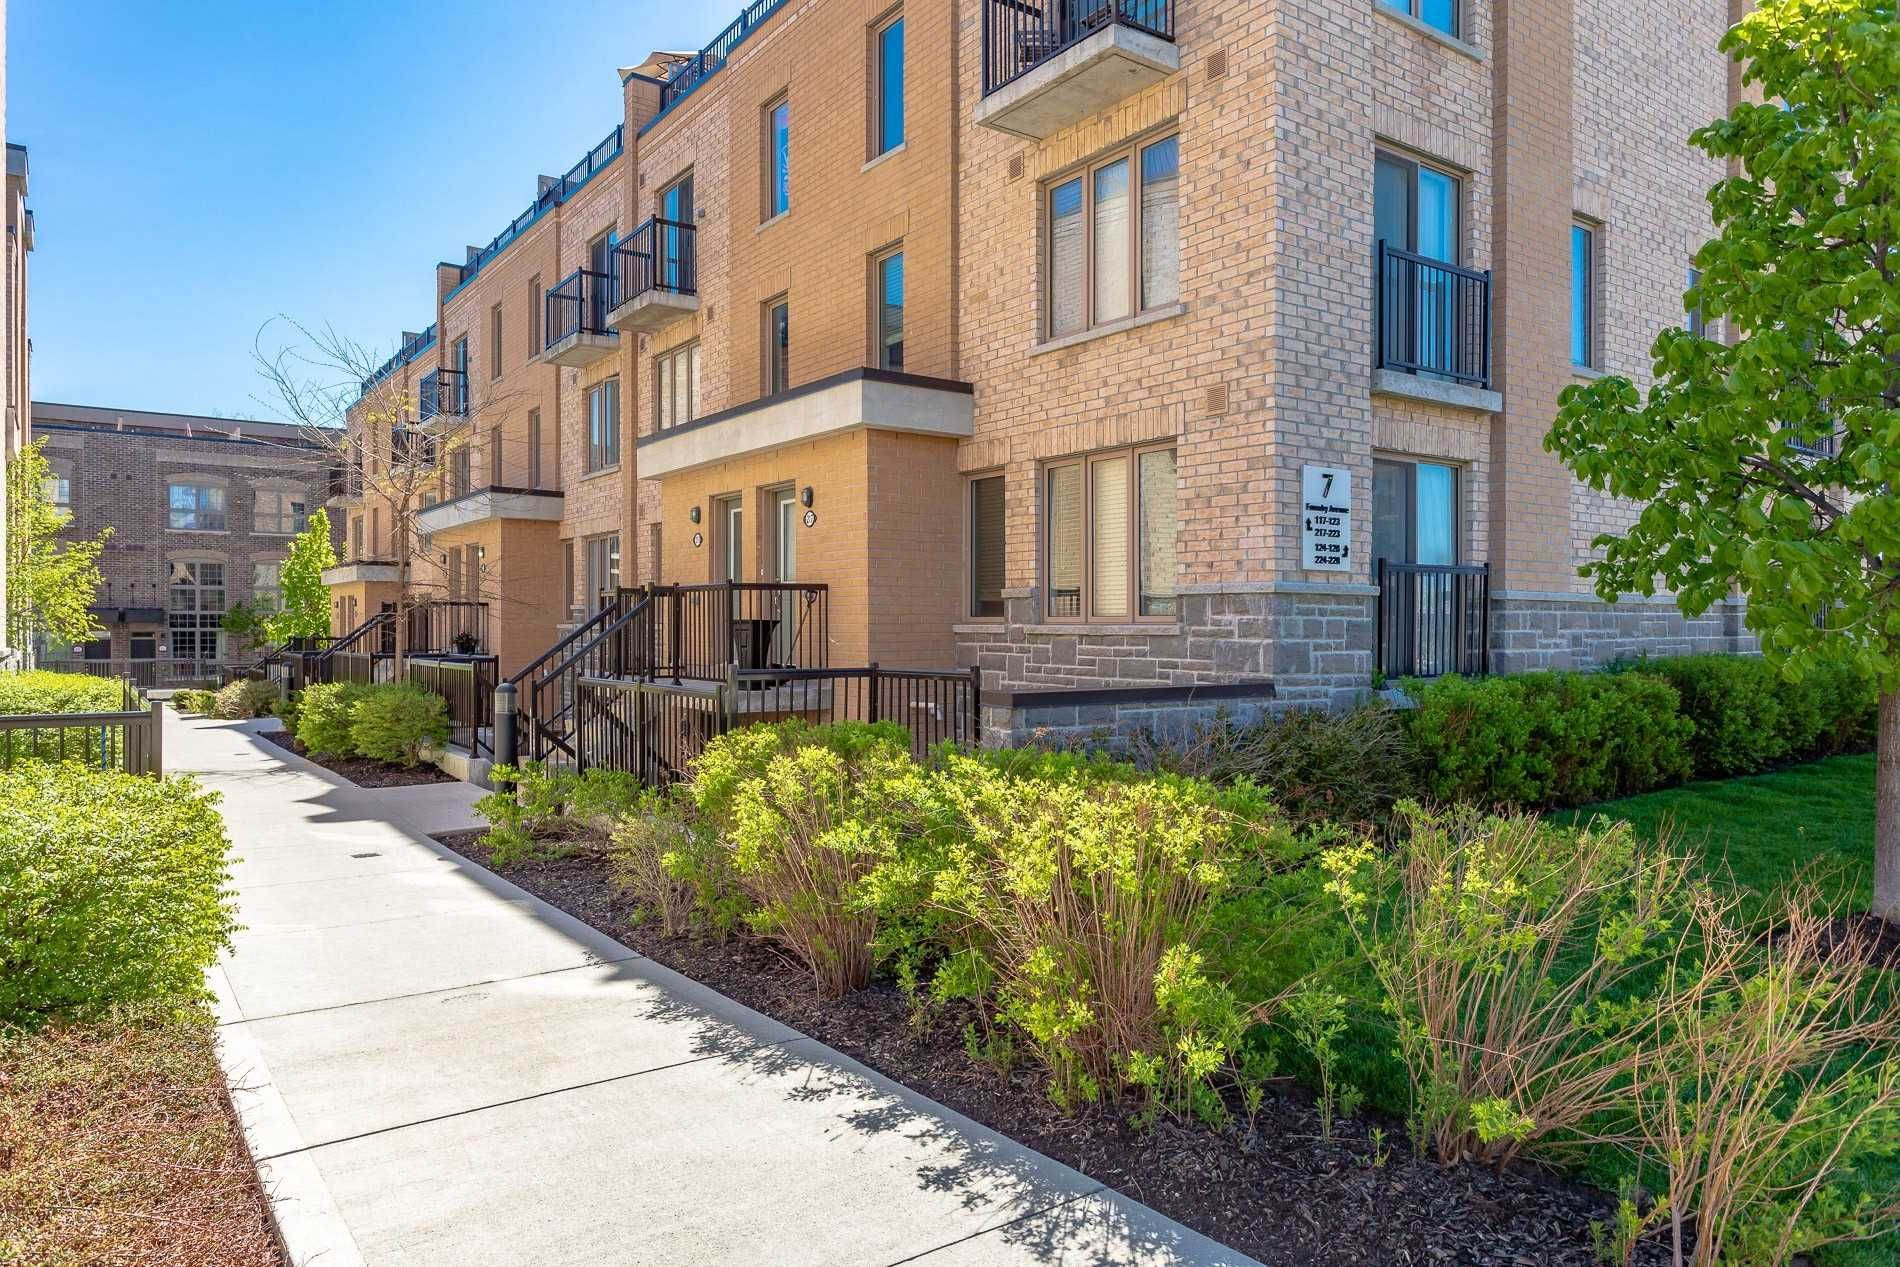 7-15 Foundry Avenue Townhomes at 7-15 Foundry Ave. This condo townhouse is located in  West End, Toronto